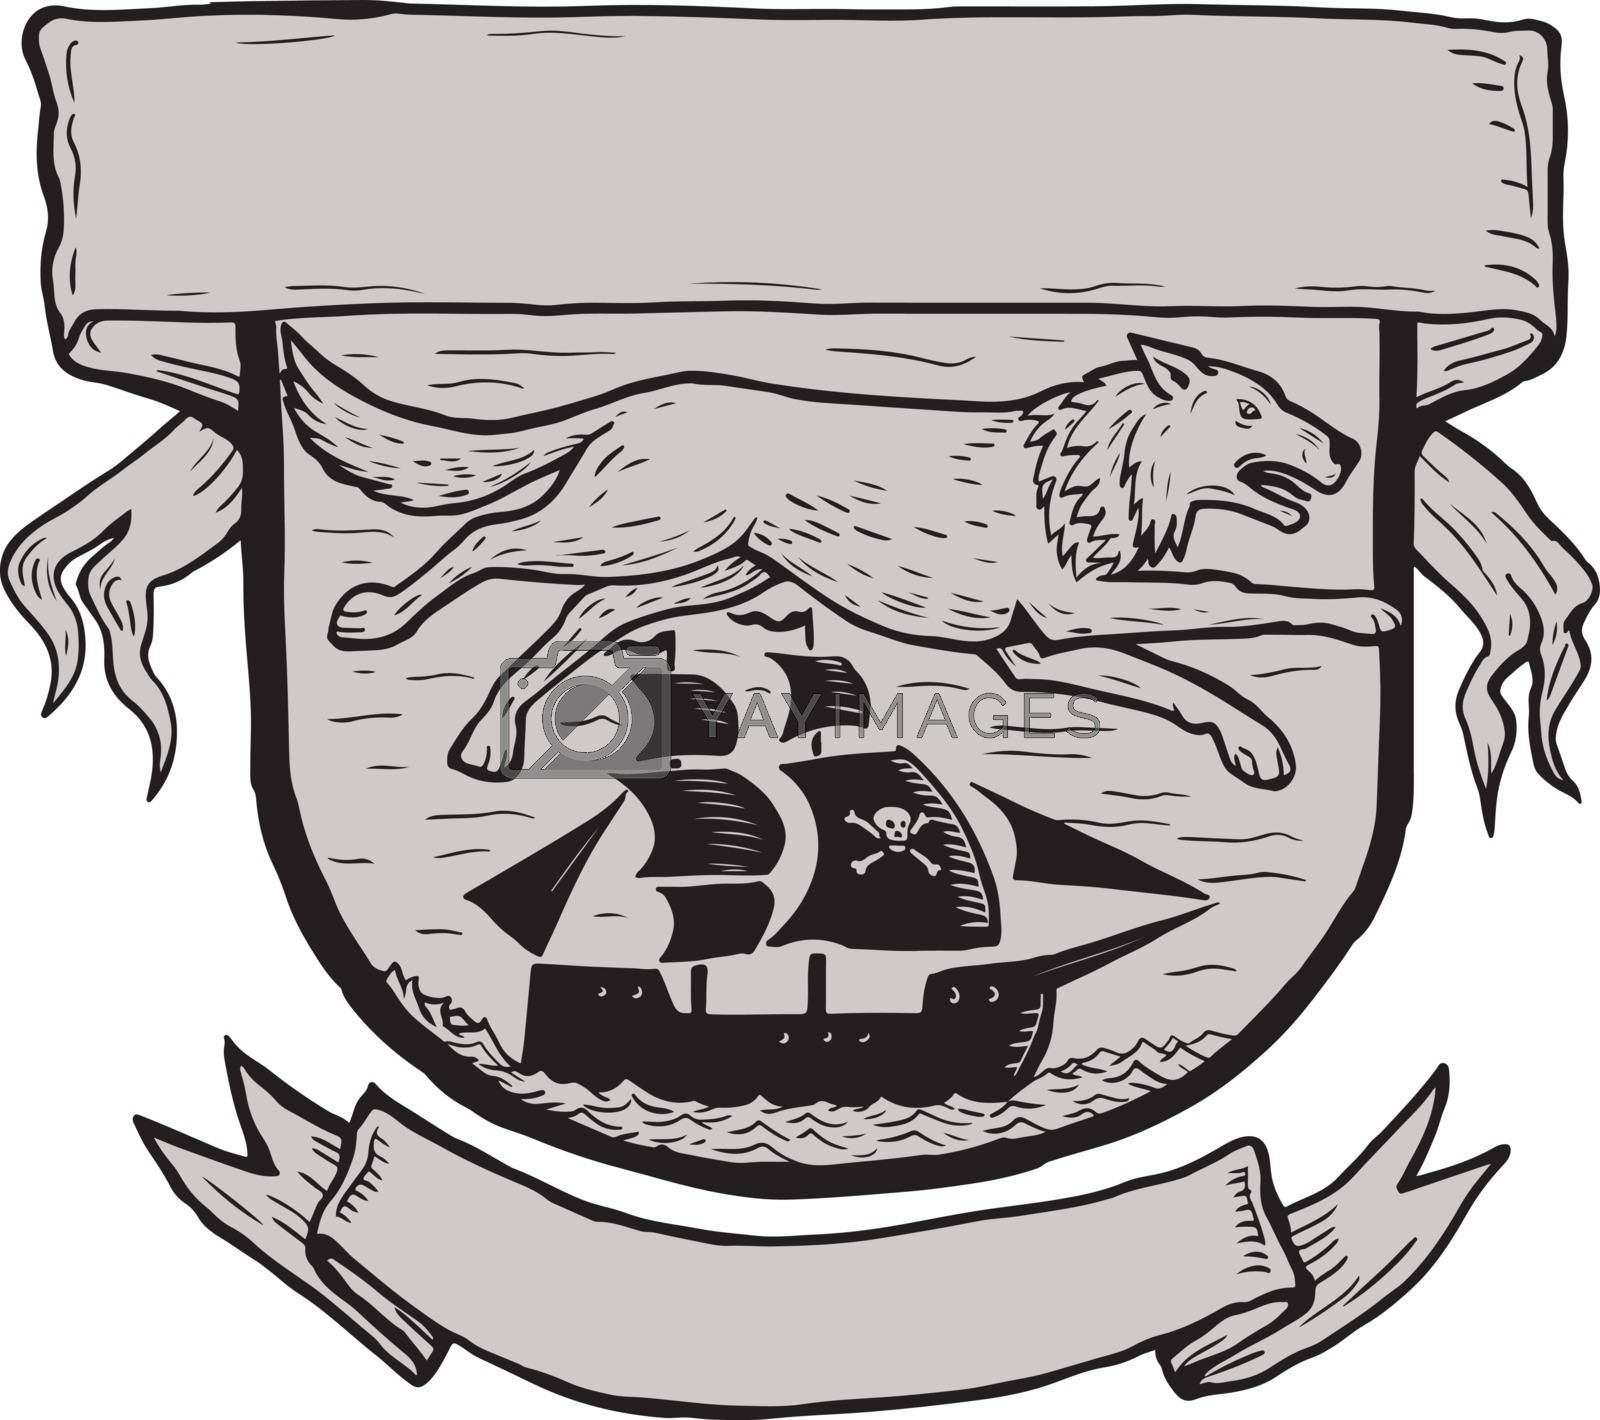 Scratchboard style illustration of a wolf running or flying over a pirate sailing ship set inside crest or shield with banner done on scraperboard on isolated background.